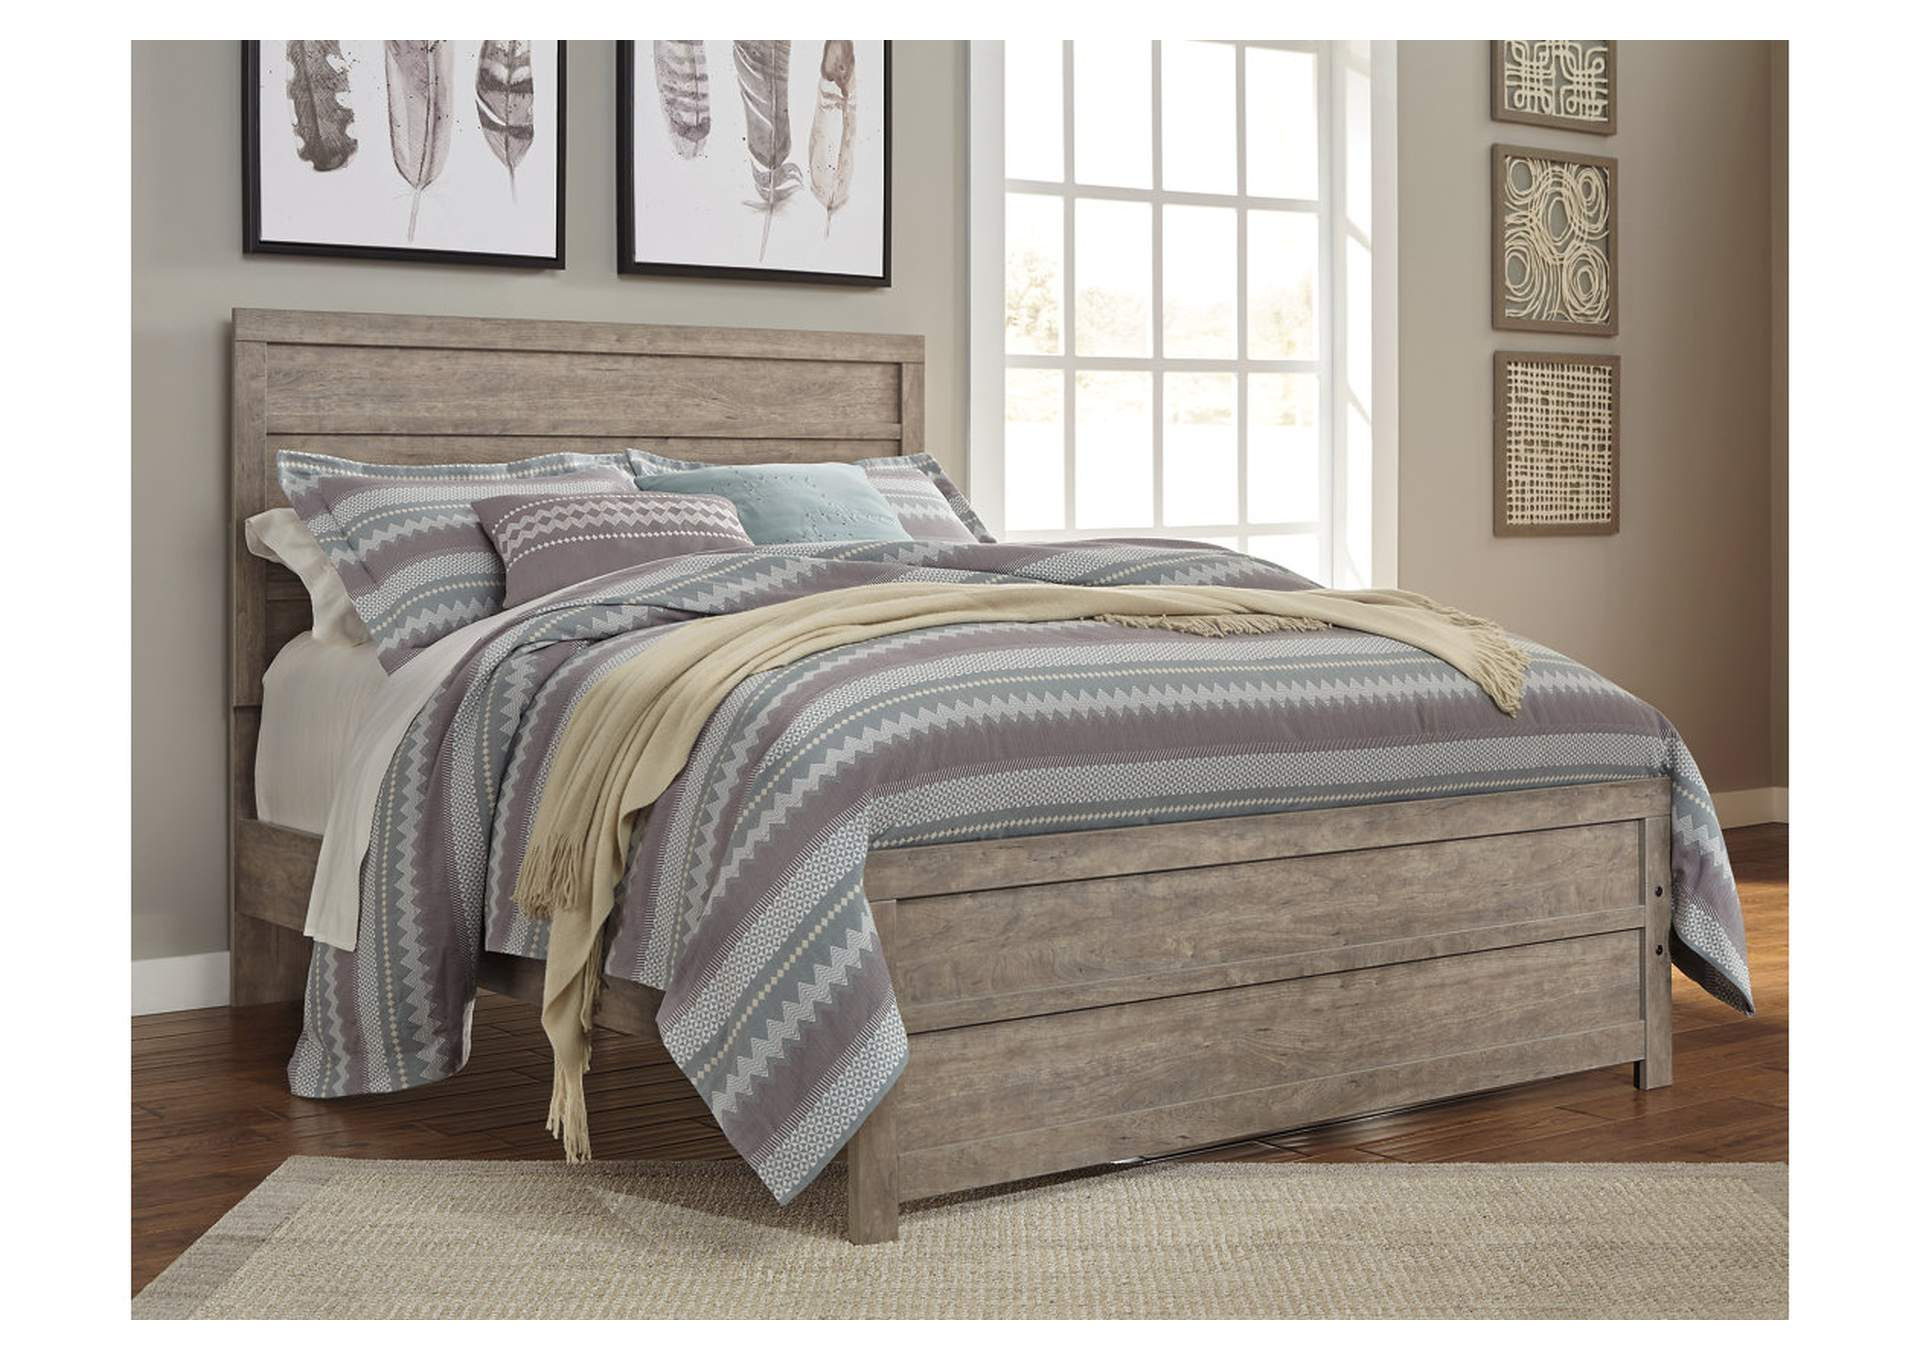 Culverbach Gray Queen/Full Panel Bed,ABF Signature Design by Ashley